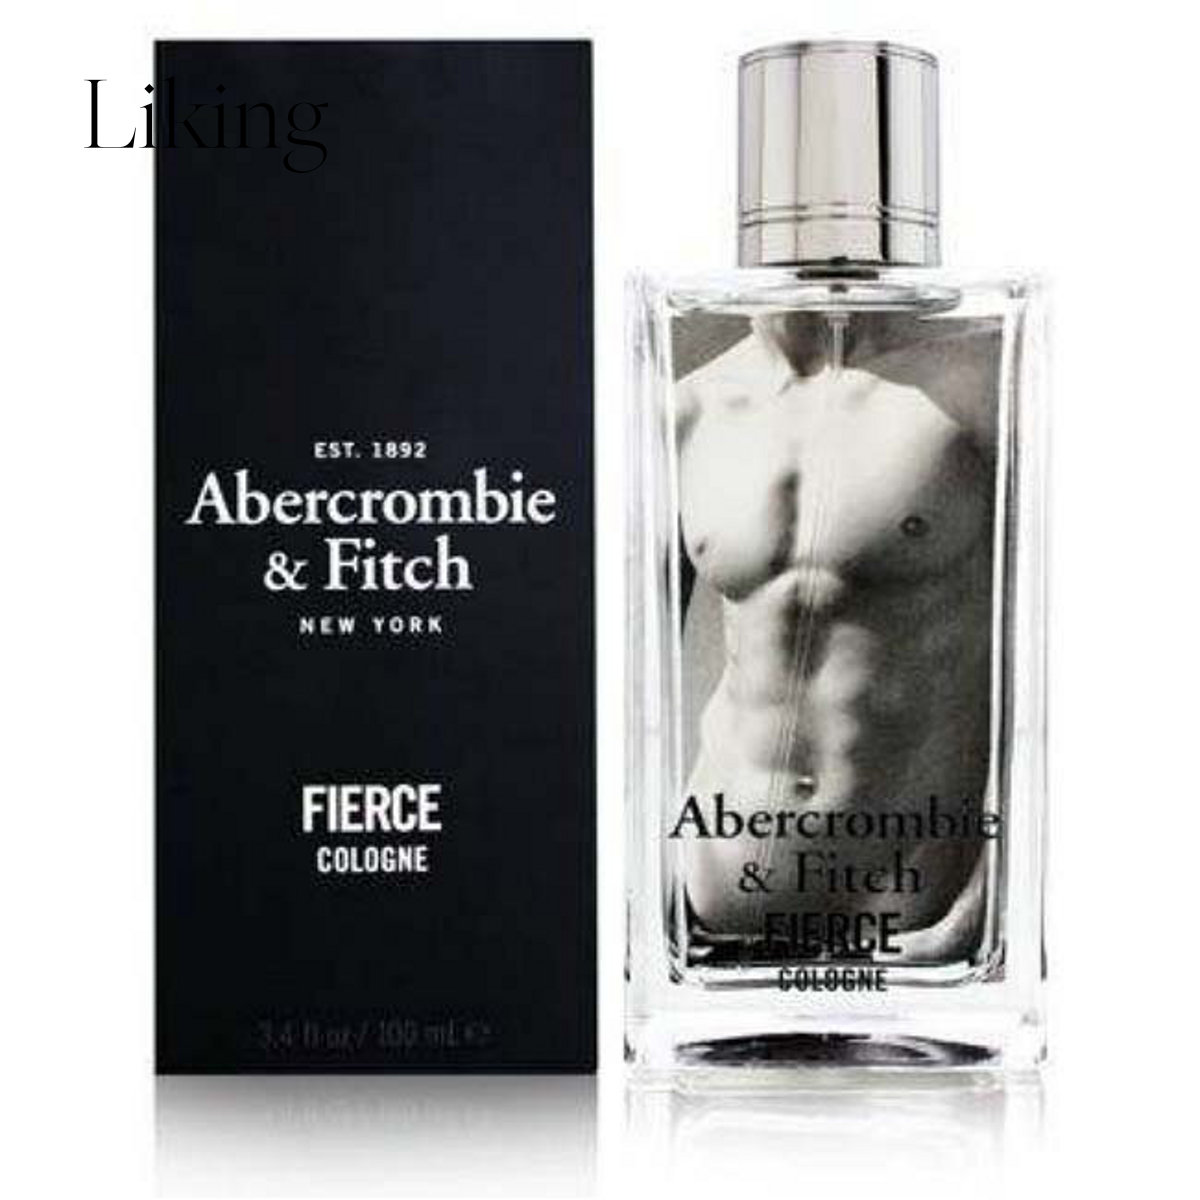 abercrombie   fitch 通用 男士古龙香水